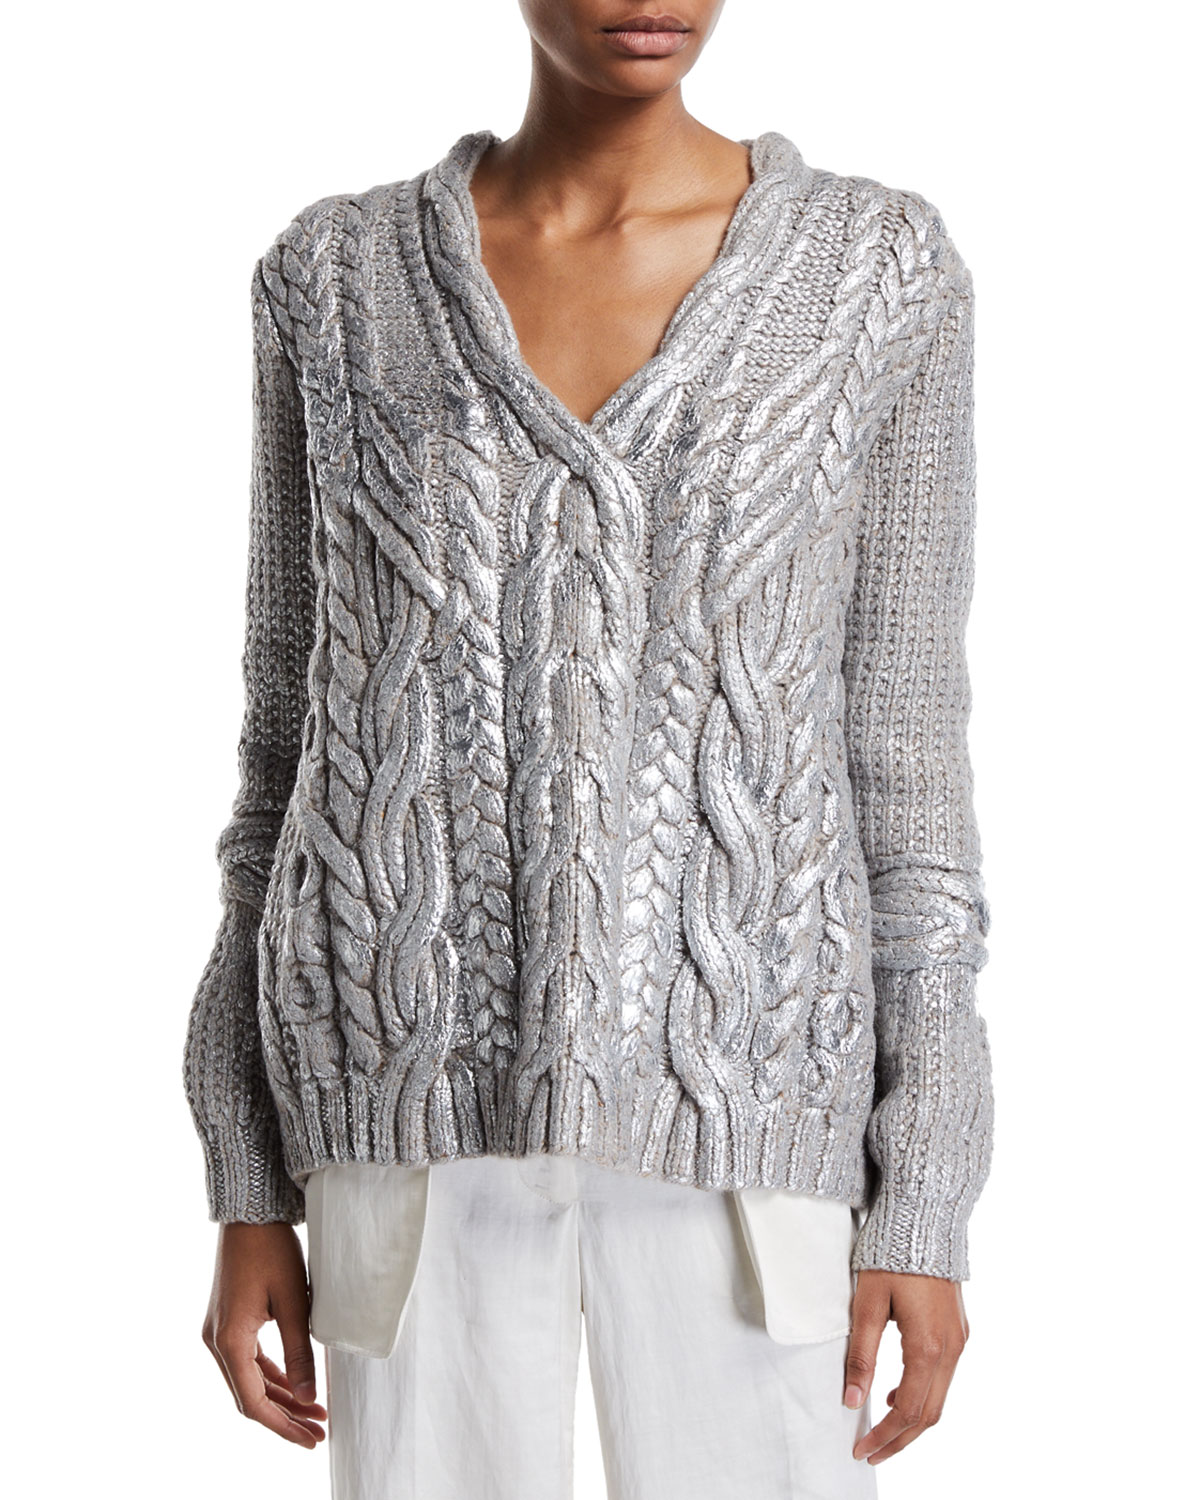 Partow Maxime Hand-Painted Cashmere Cable-Knit Sweater | Neiman Marcus